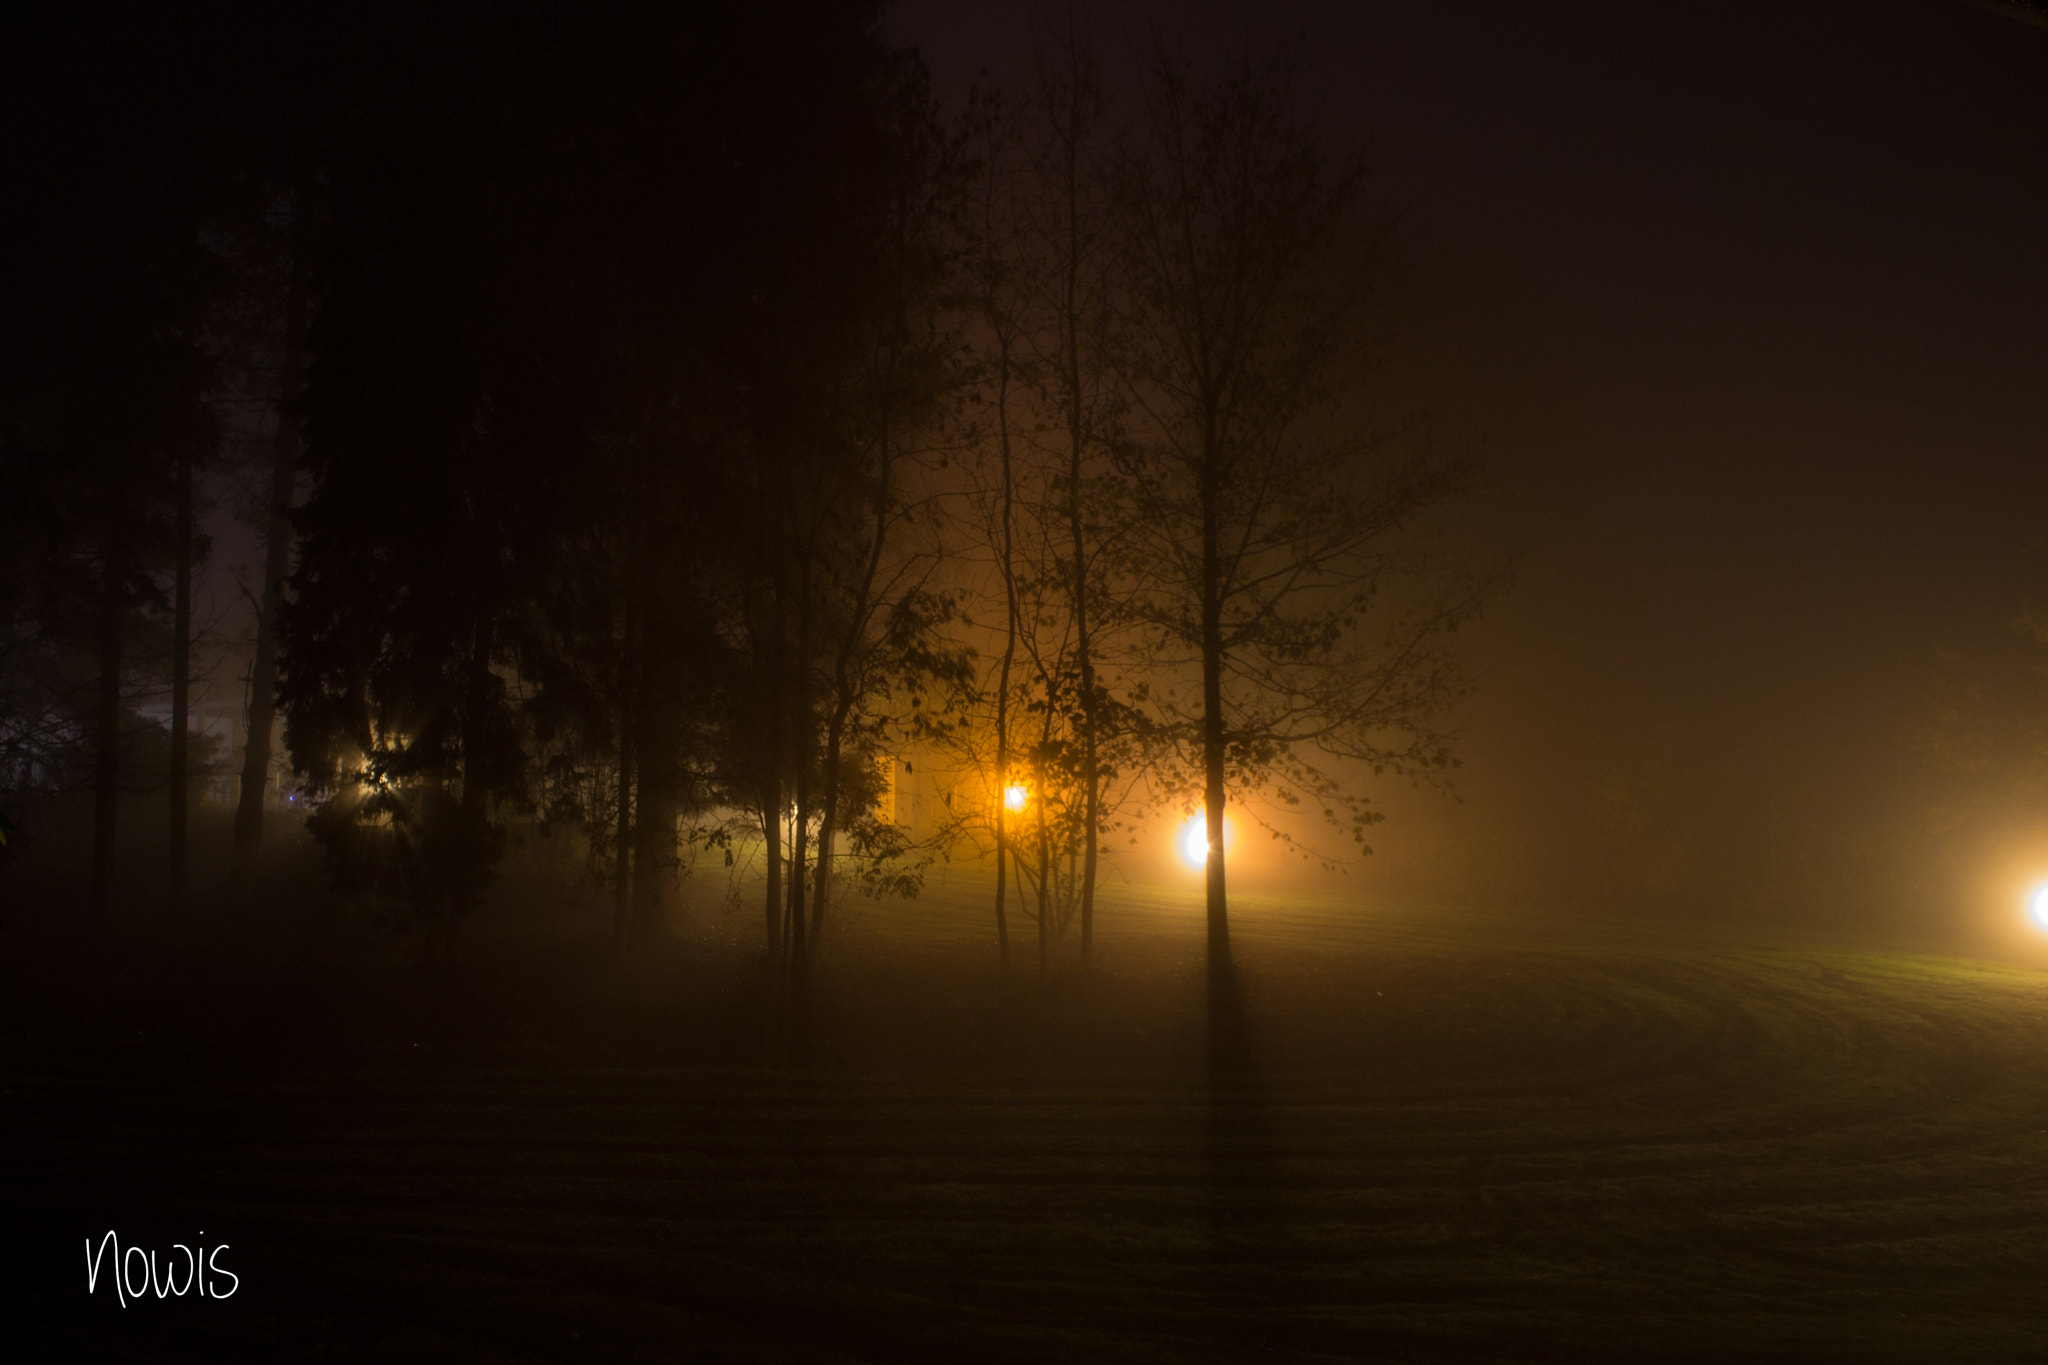 Photograph Fog, Threes and Light by Nowis on 500px